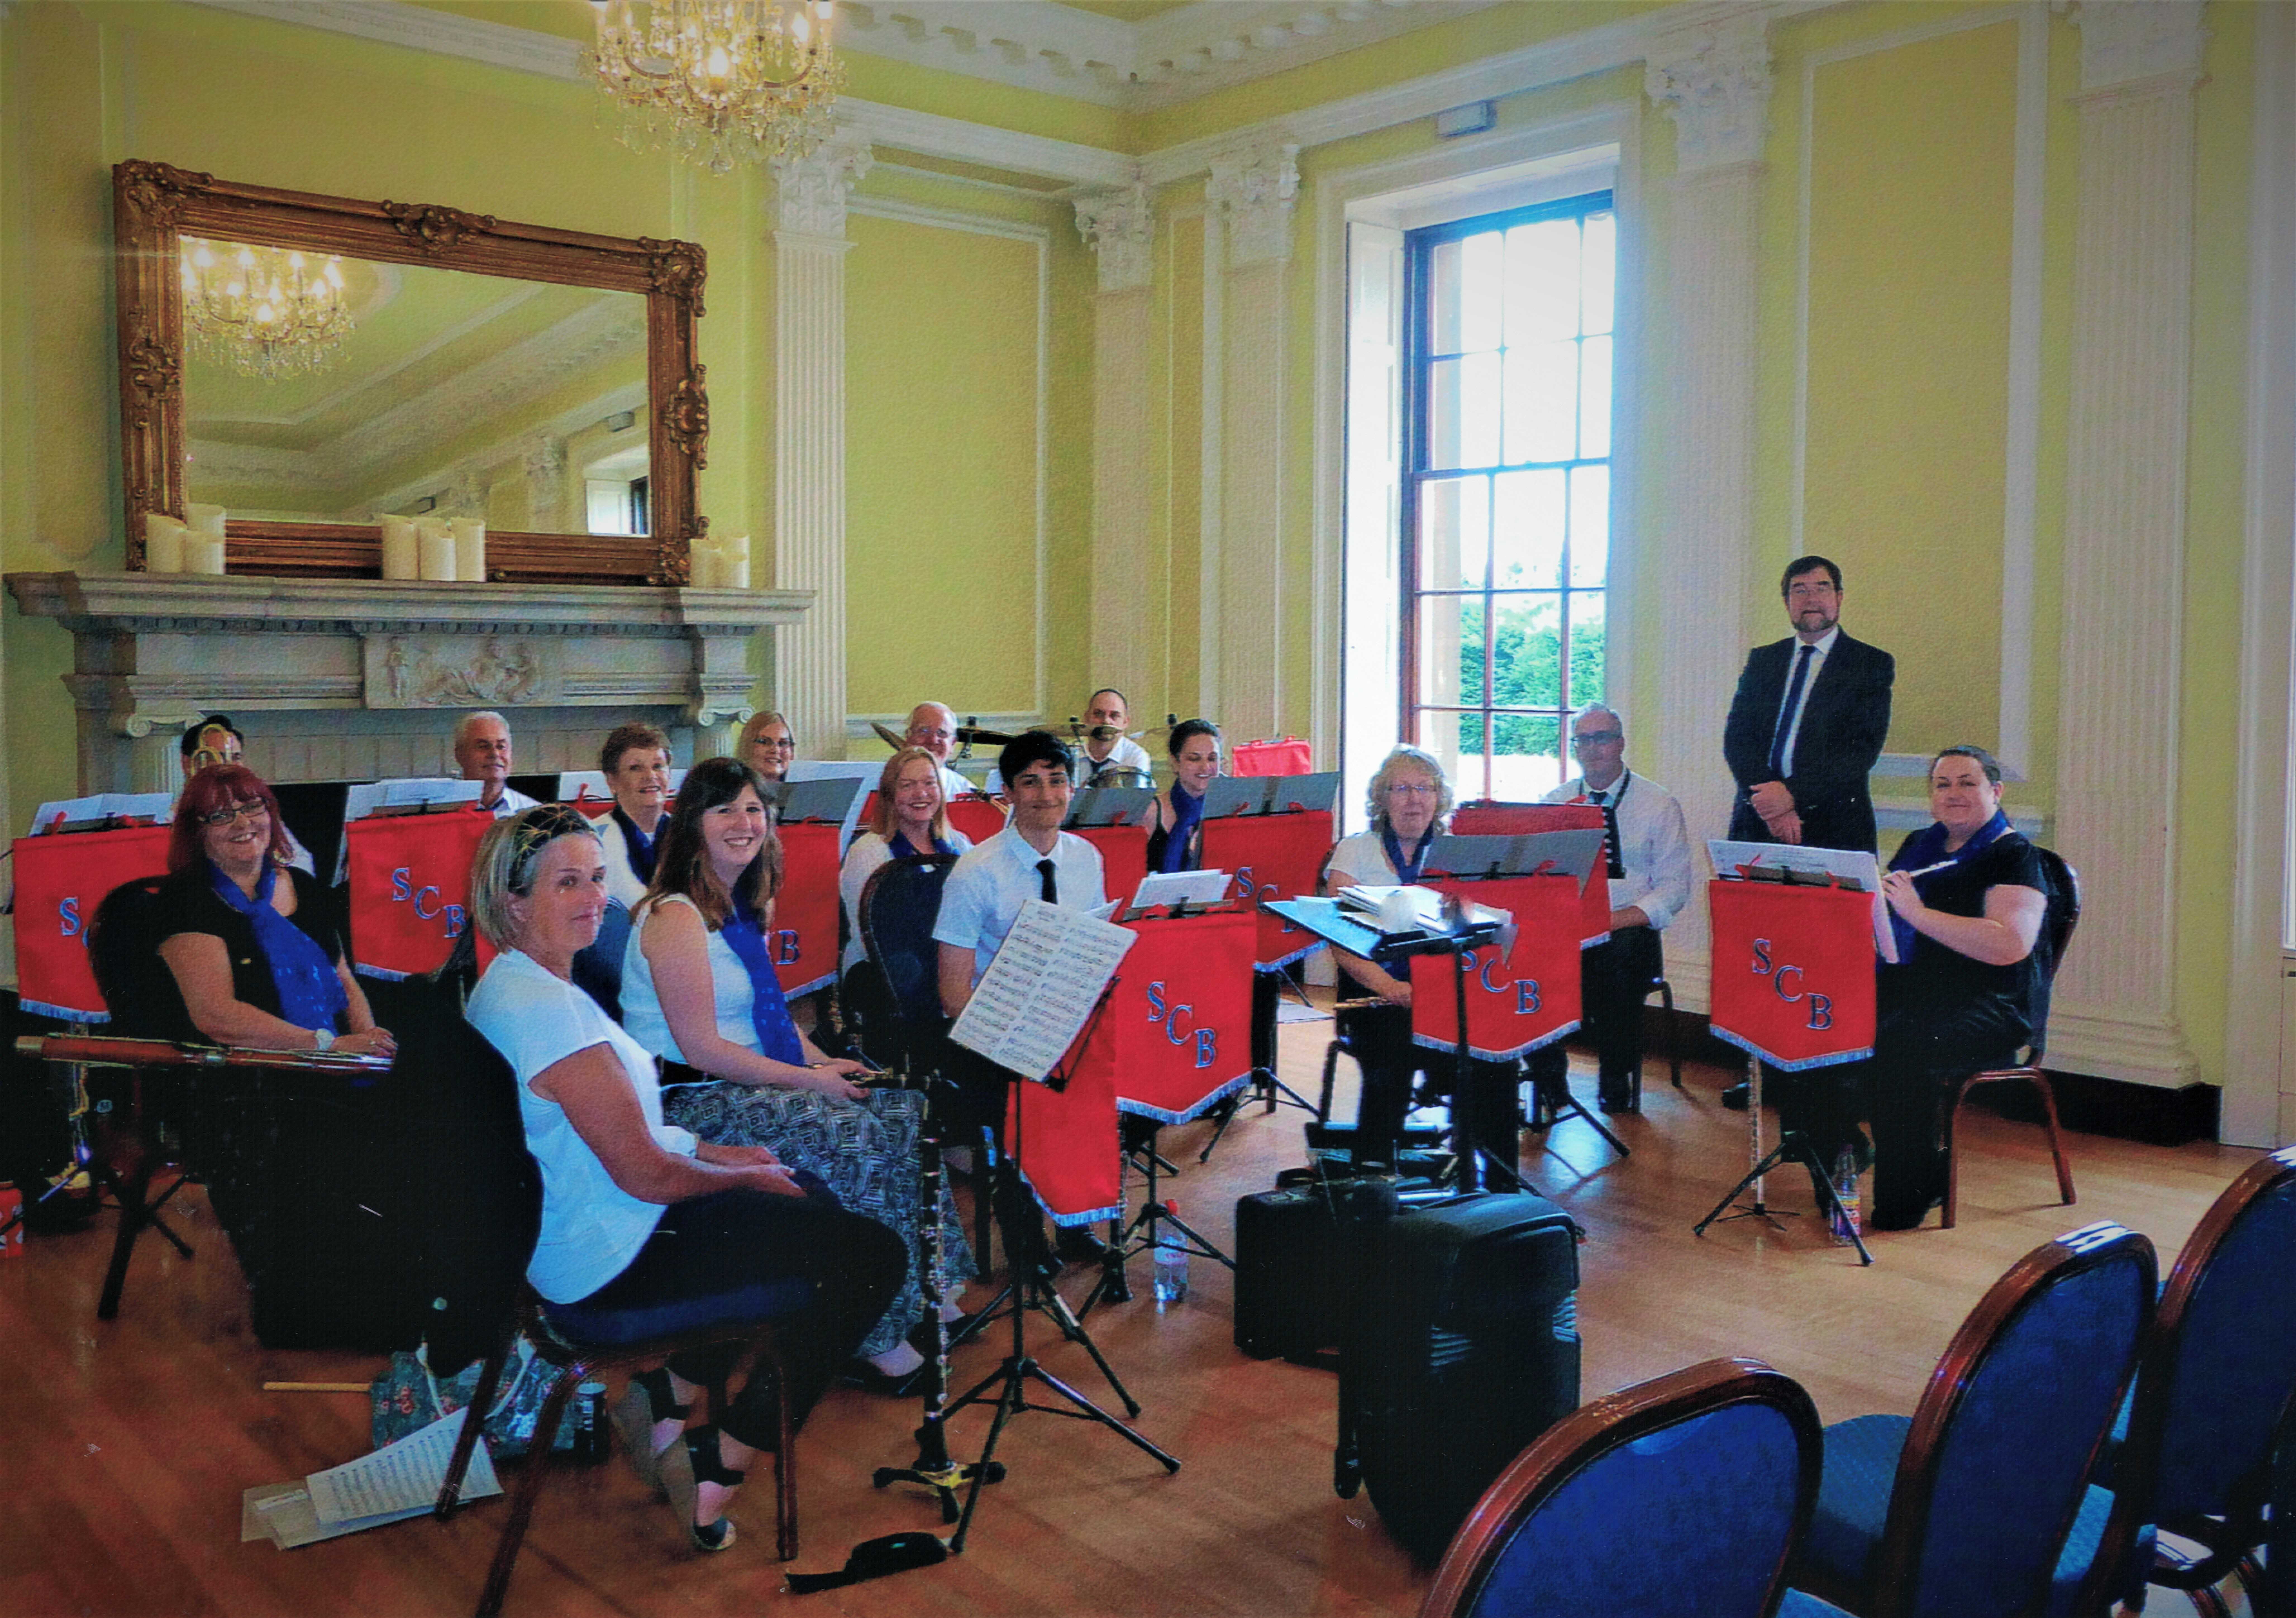 Concert Photo Normanby Hall July 2018160